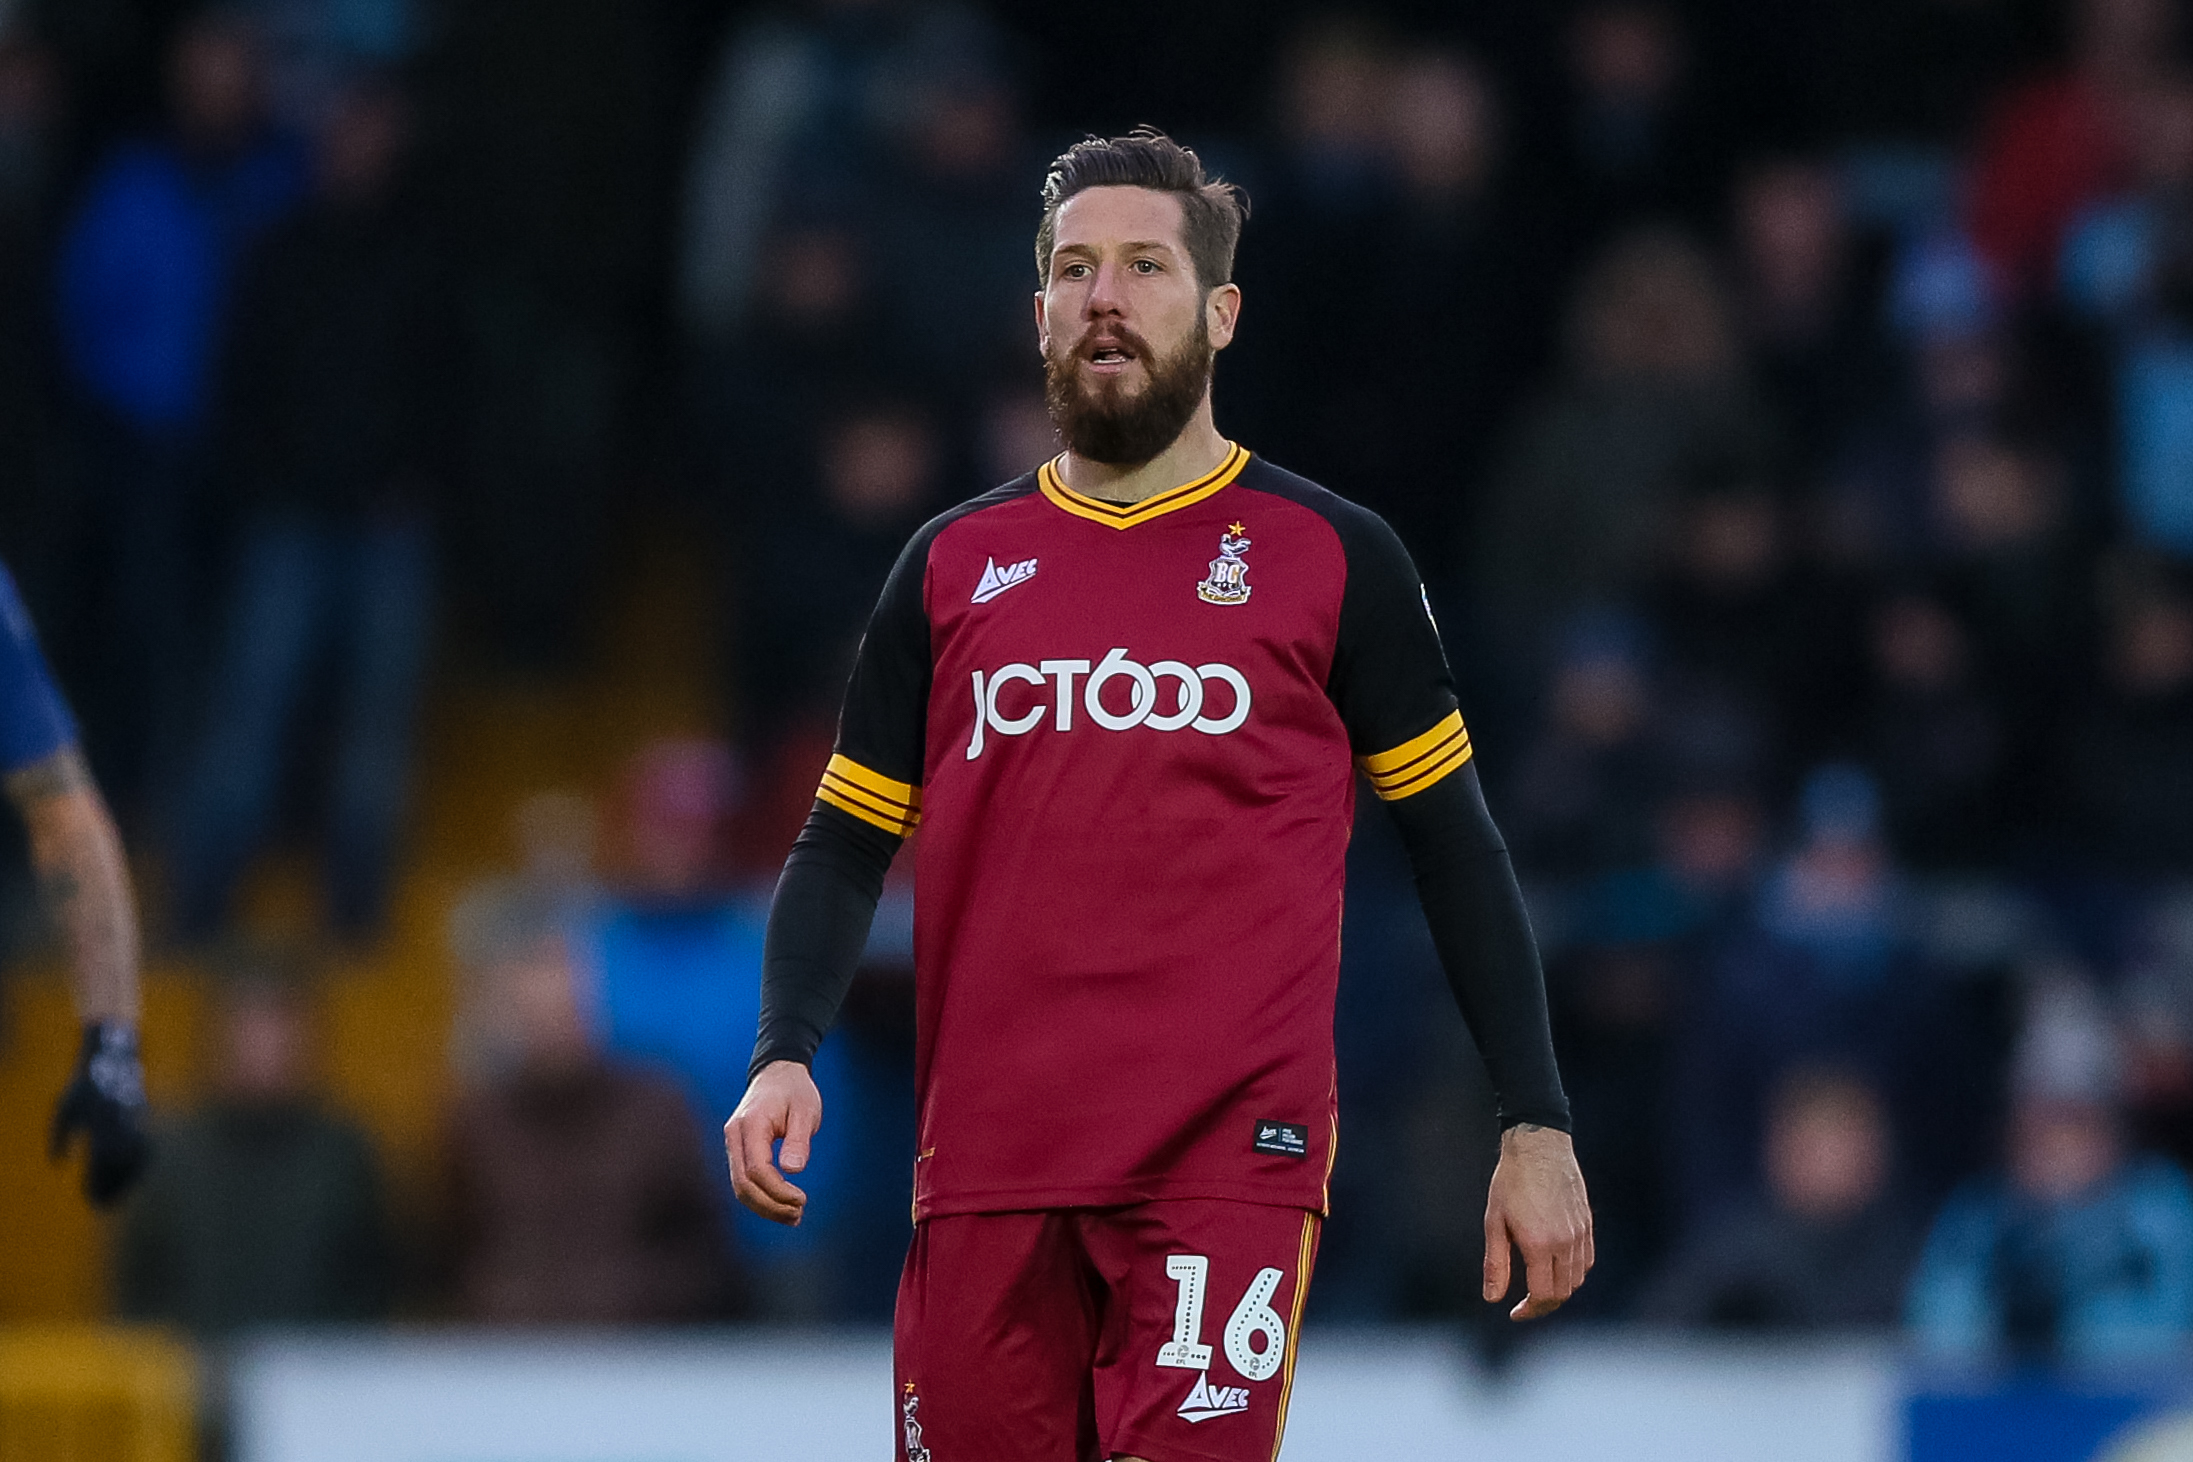 Jacob Butterfield made his debut for his hometown club via a late substitute appearance in City's goalless draw at Wycombe Wanderers in League One. Picture: Thomas Gadd